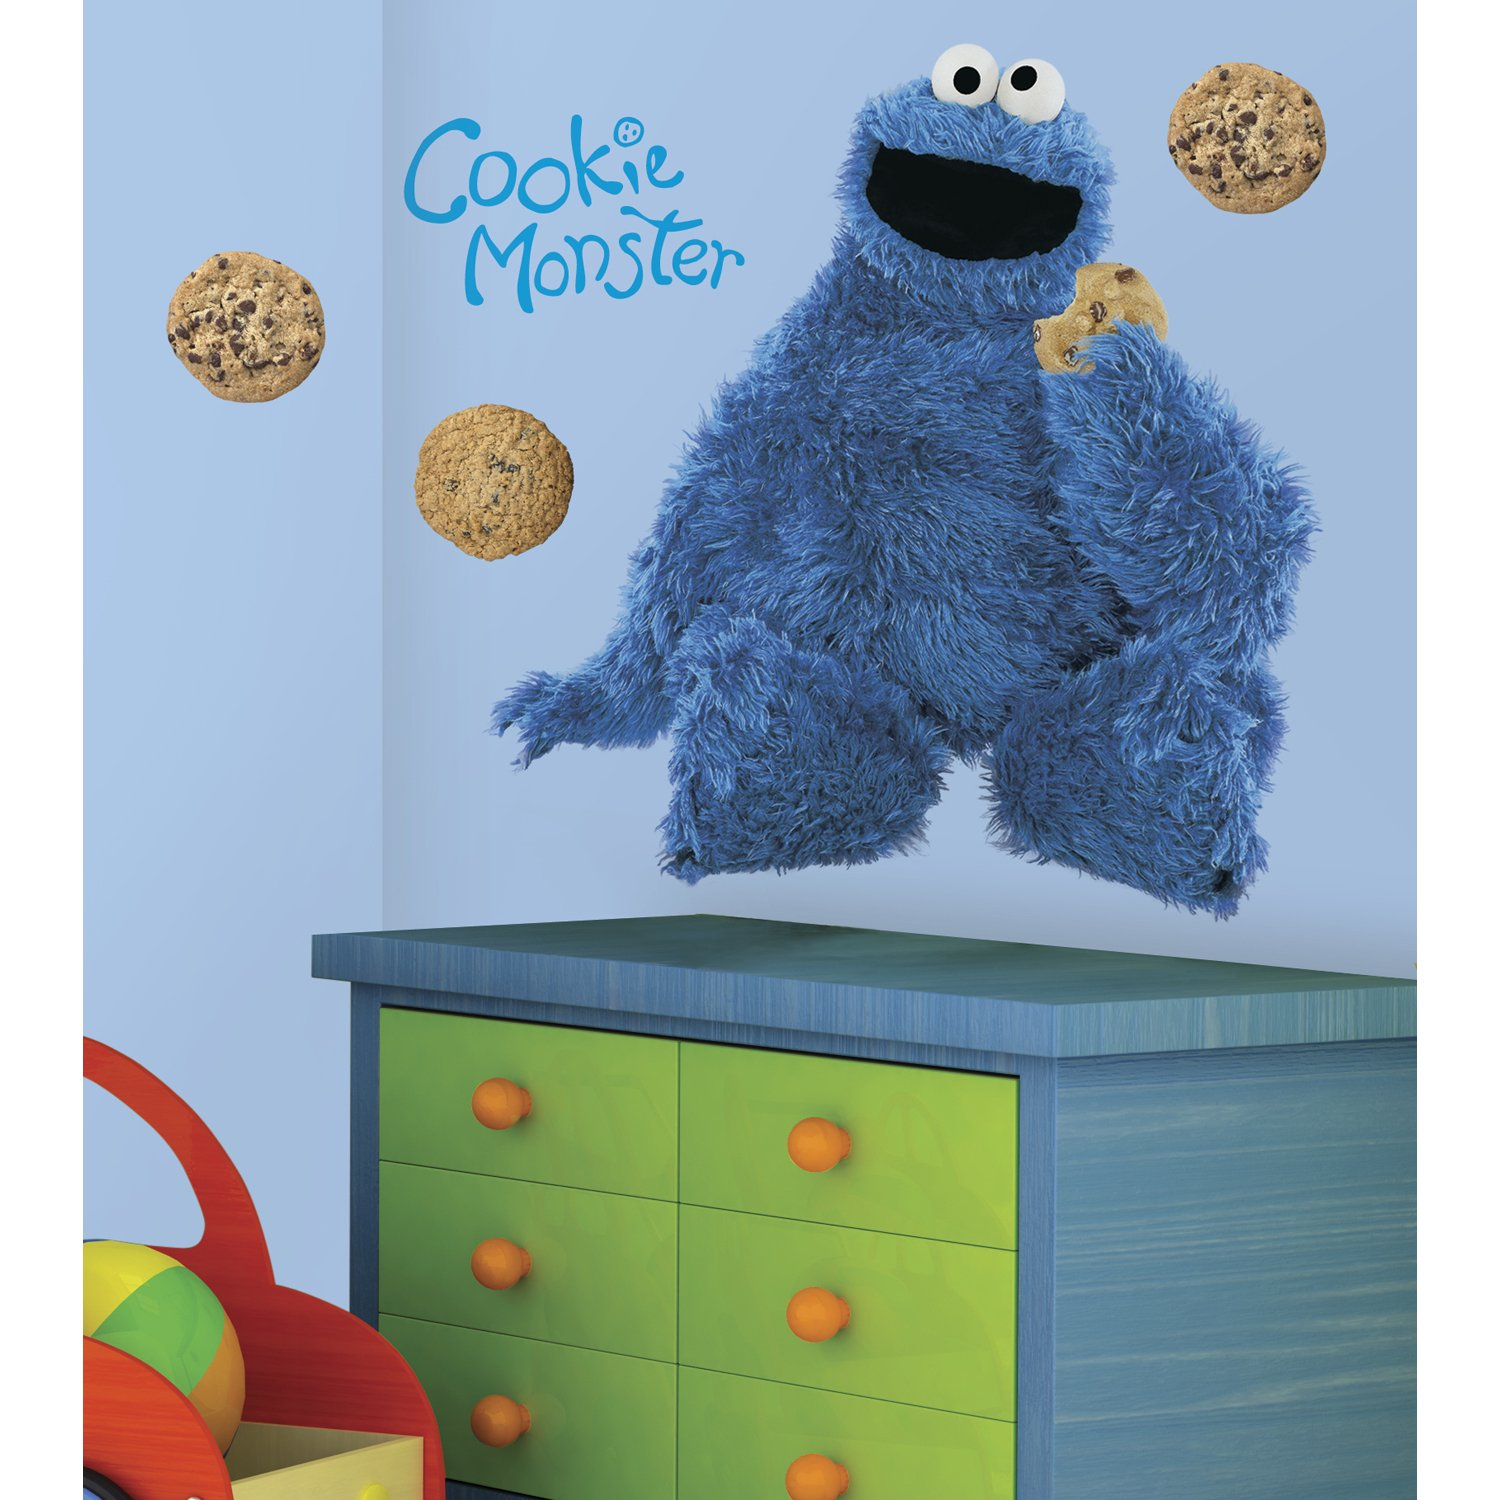 Roommates rmk1483gm sesame street cookie monster giant peel roommates rmk1483gm sesame street cookie monster giant peel stick wall decal childrens wall decor amazon amipublicfo Image collections